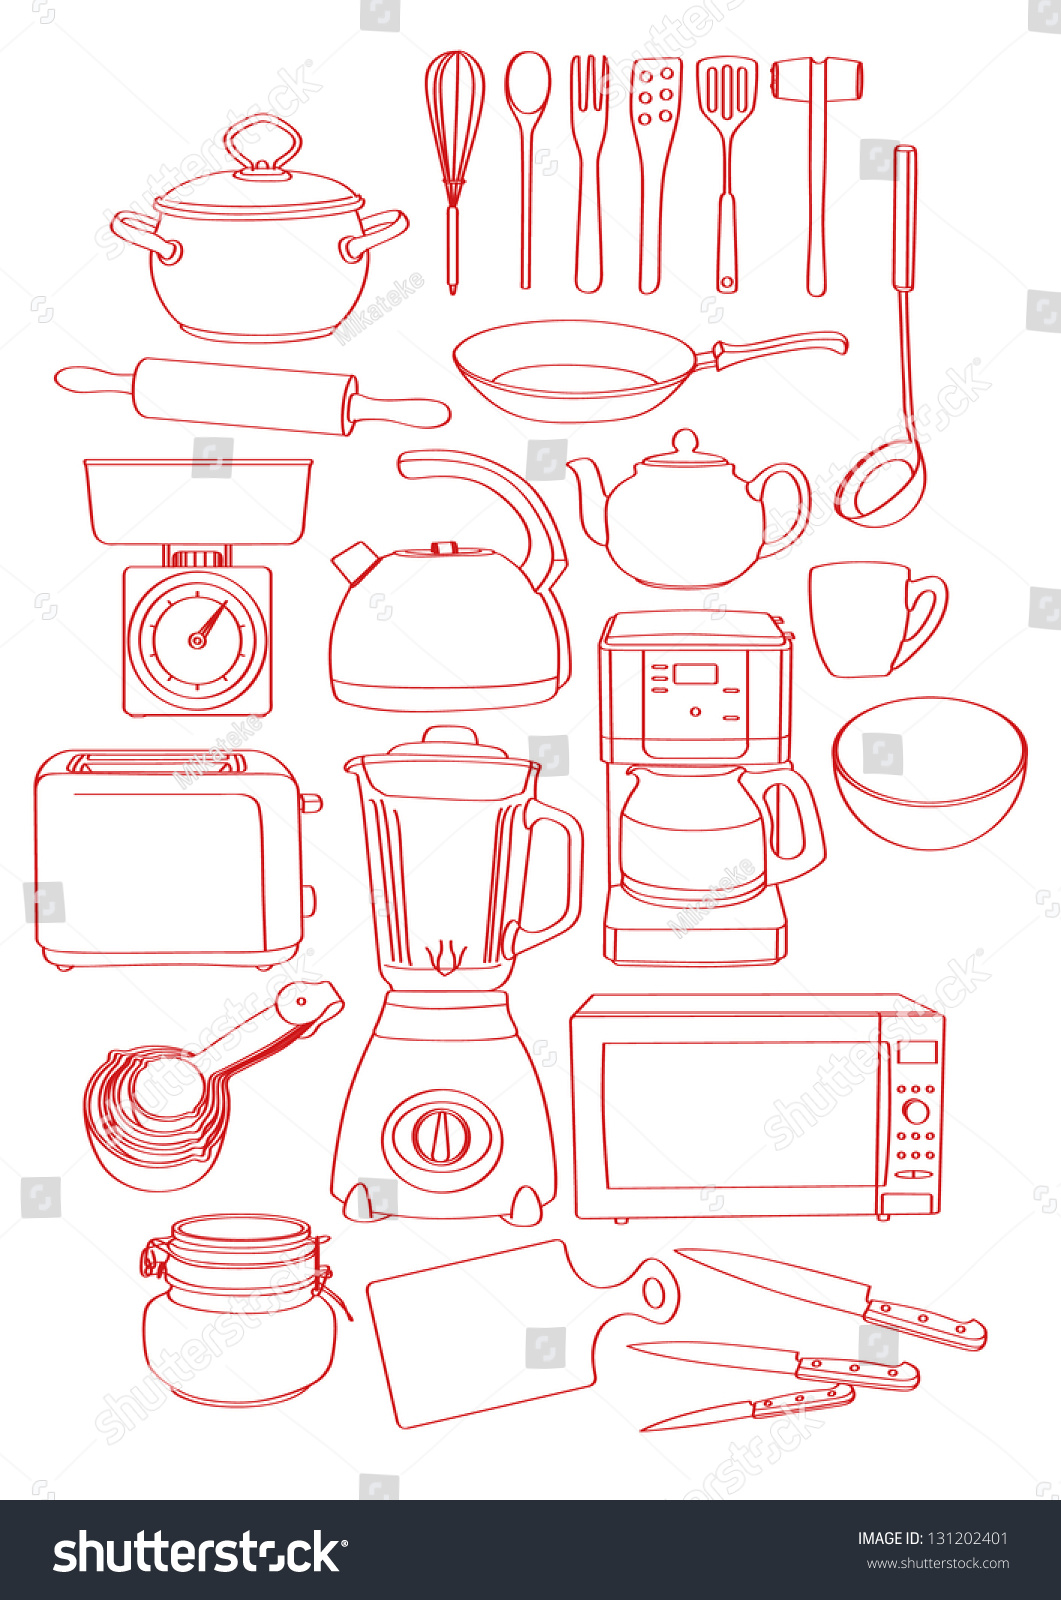 Kitchen Tools Drawing Sketch Drawing Bunch Kitchen Tools Kitchenware Stock Vector